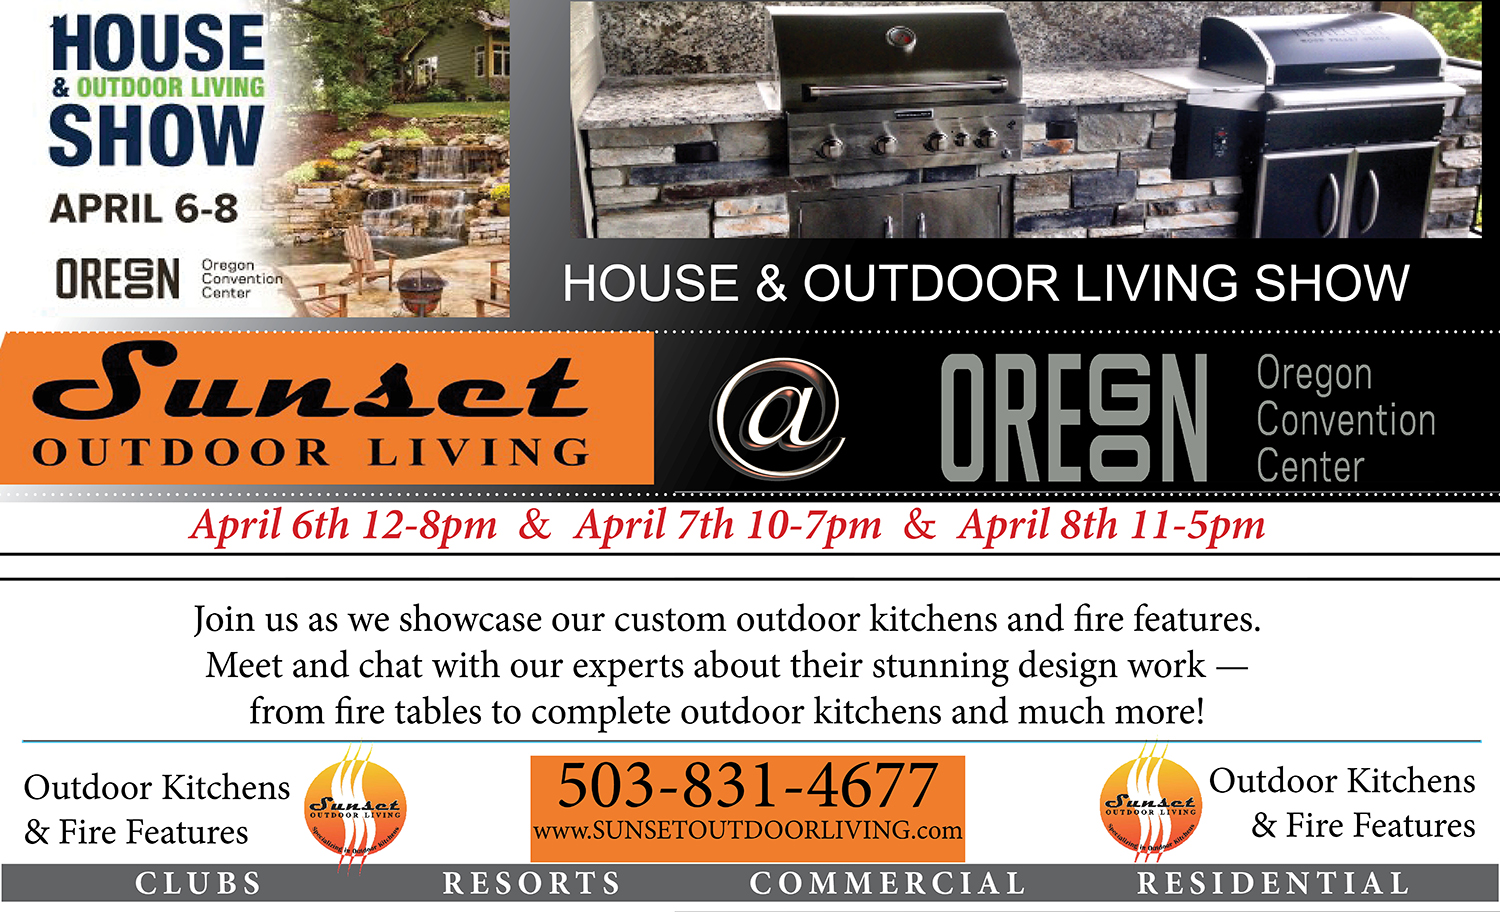 2018 House and Outdoor Living Show Flyer